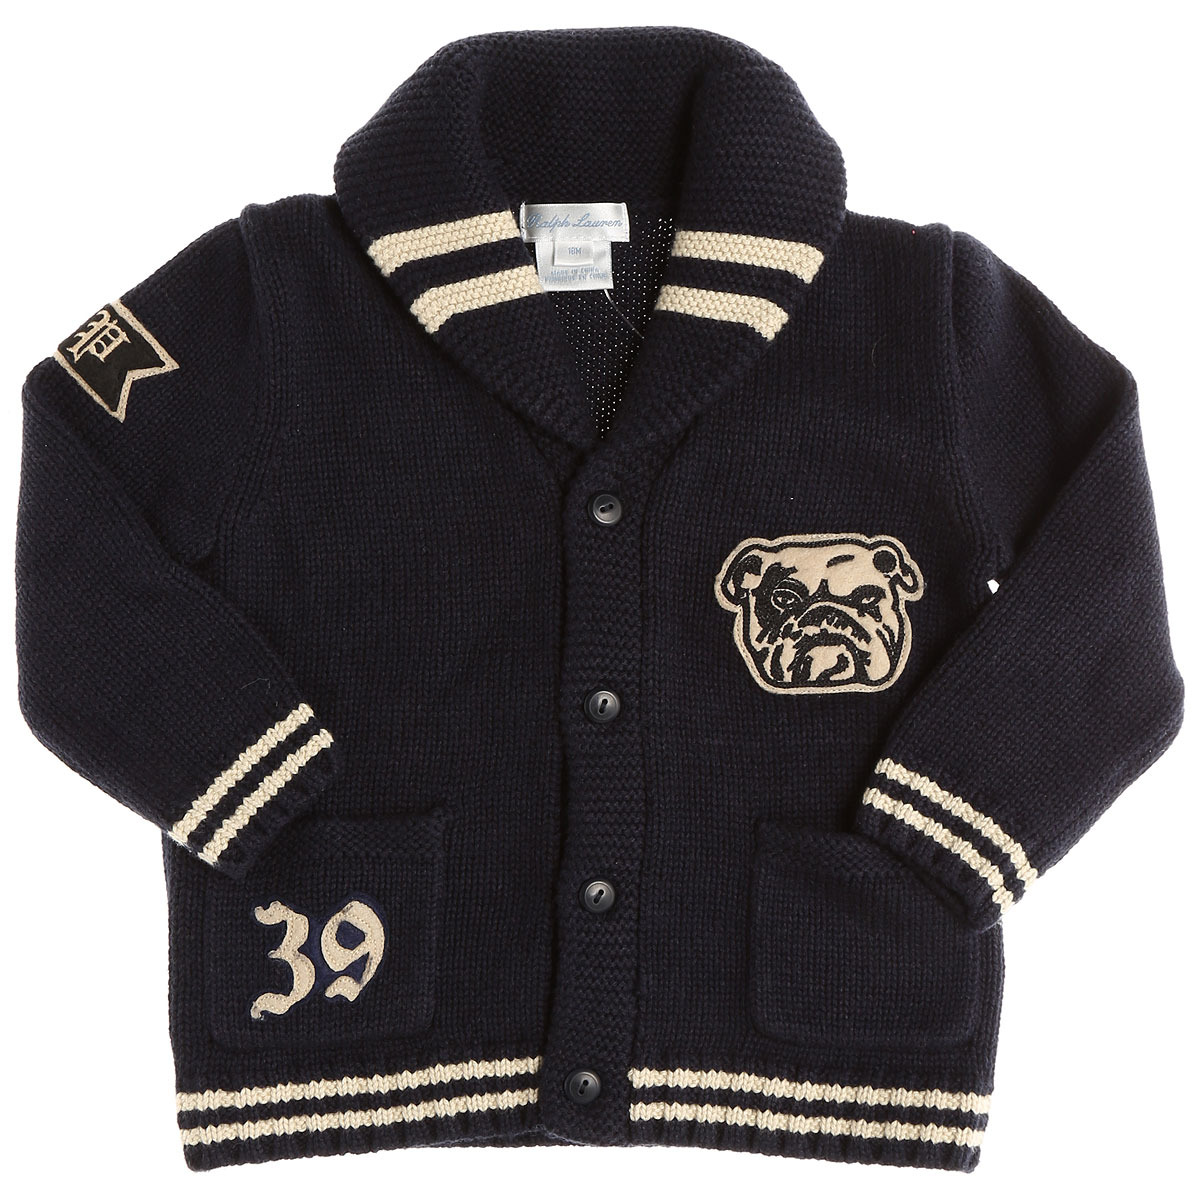 Baby Boy Clothing Ralph Lauren, Style code: 533f6-533f6-r4311